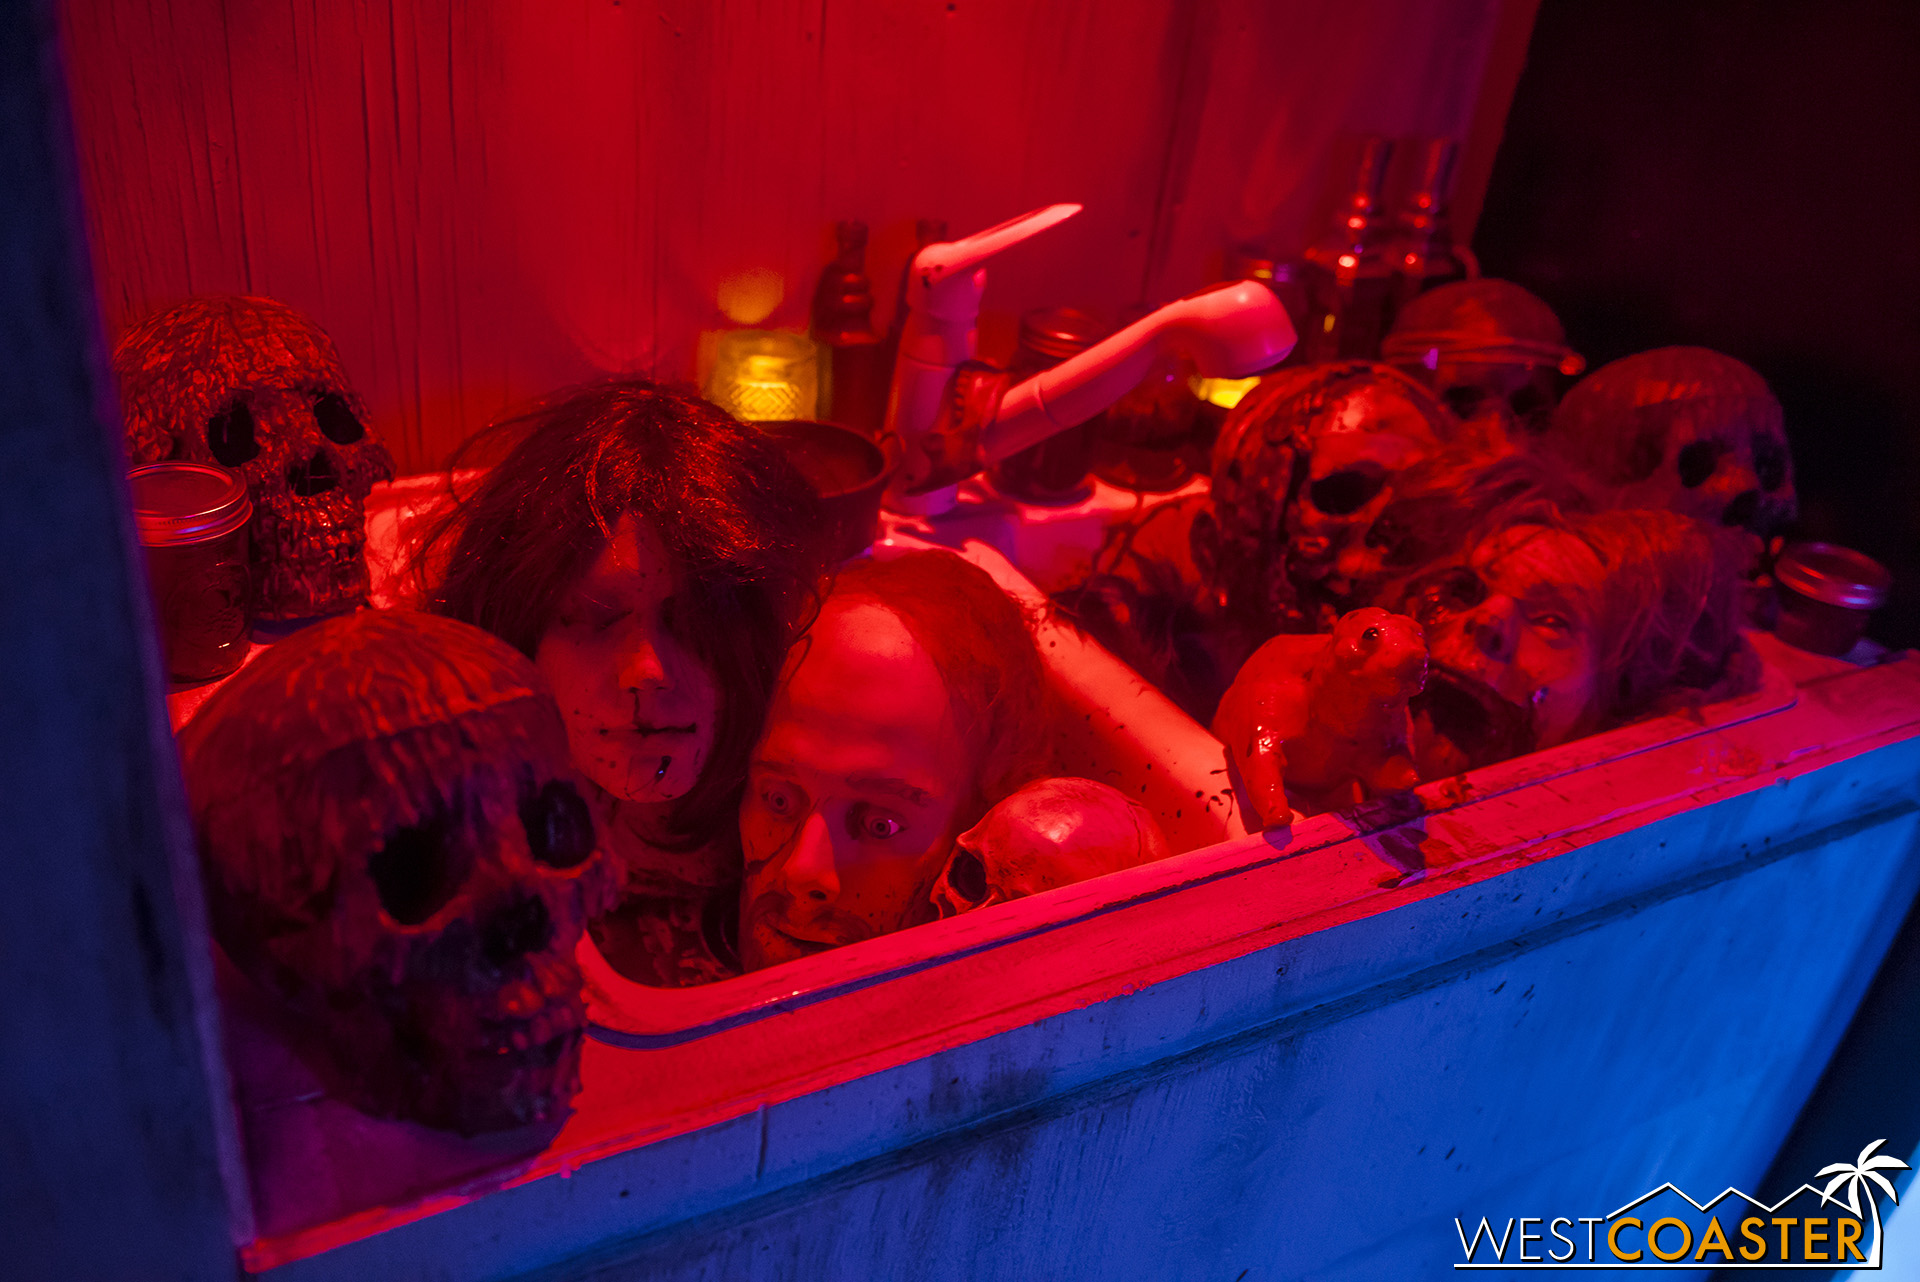 So can way more severed heads in a sink!